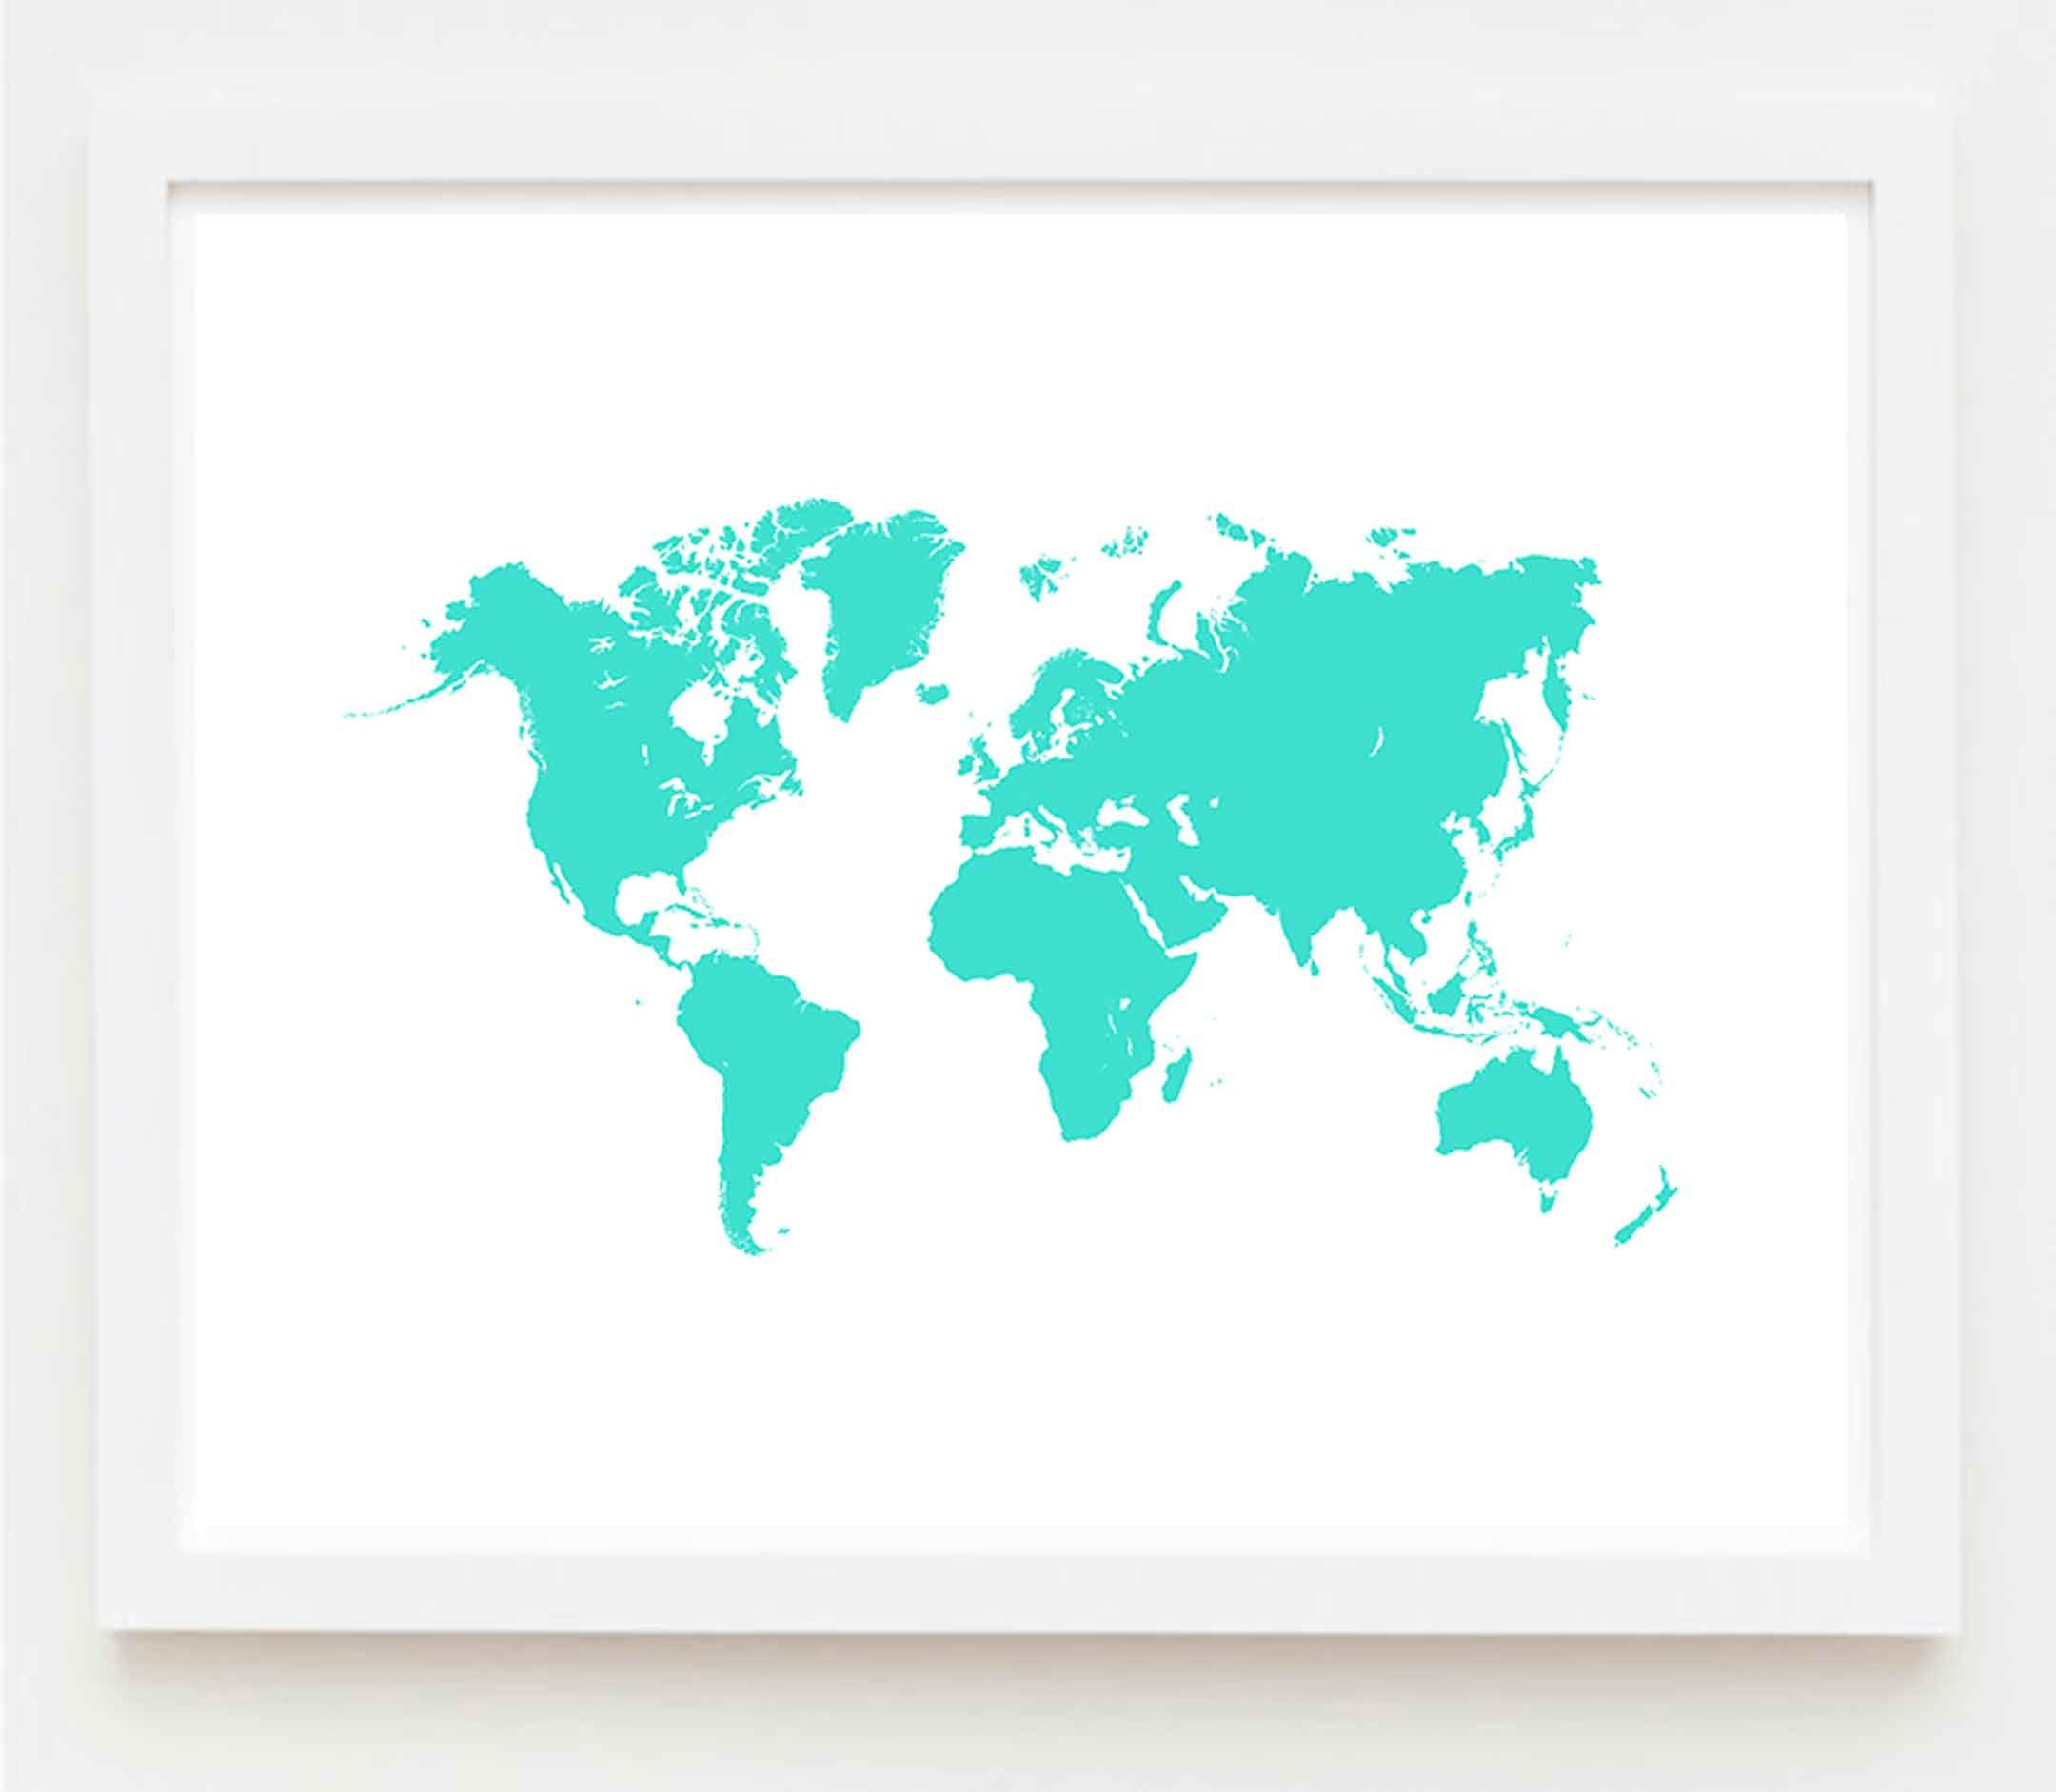 Turquoise world map art print download world map poster large turquoise world map art print download world map poster large world map gumiabroncs Gallery